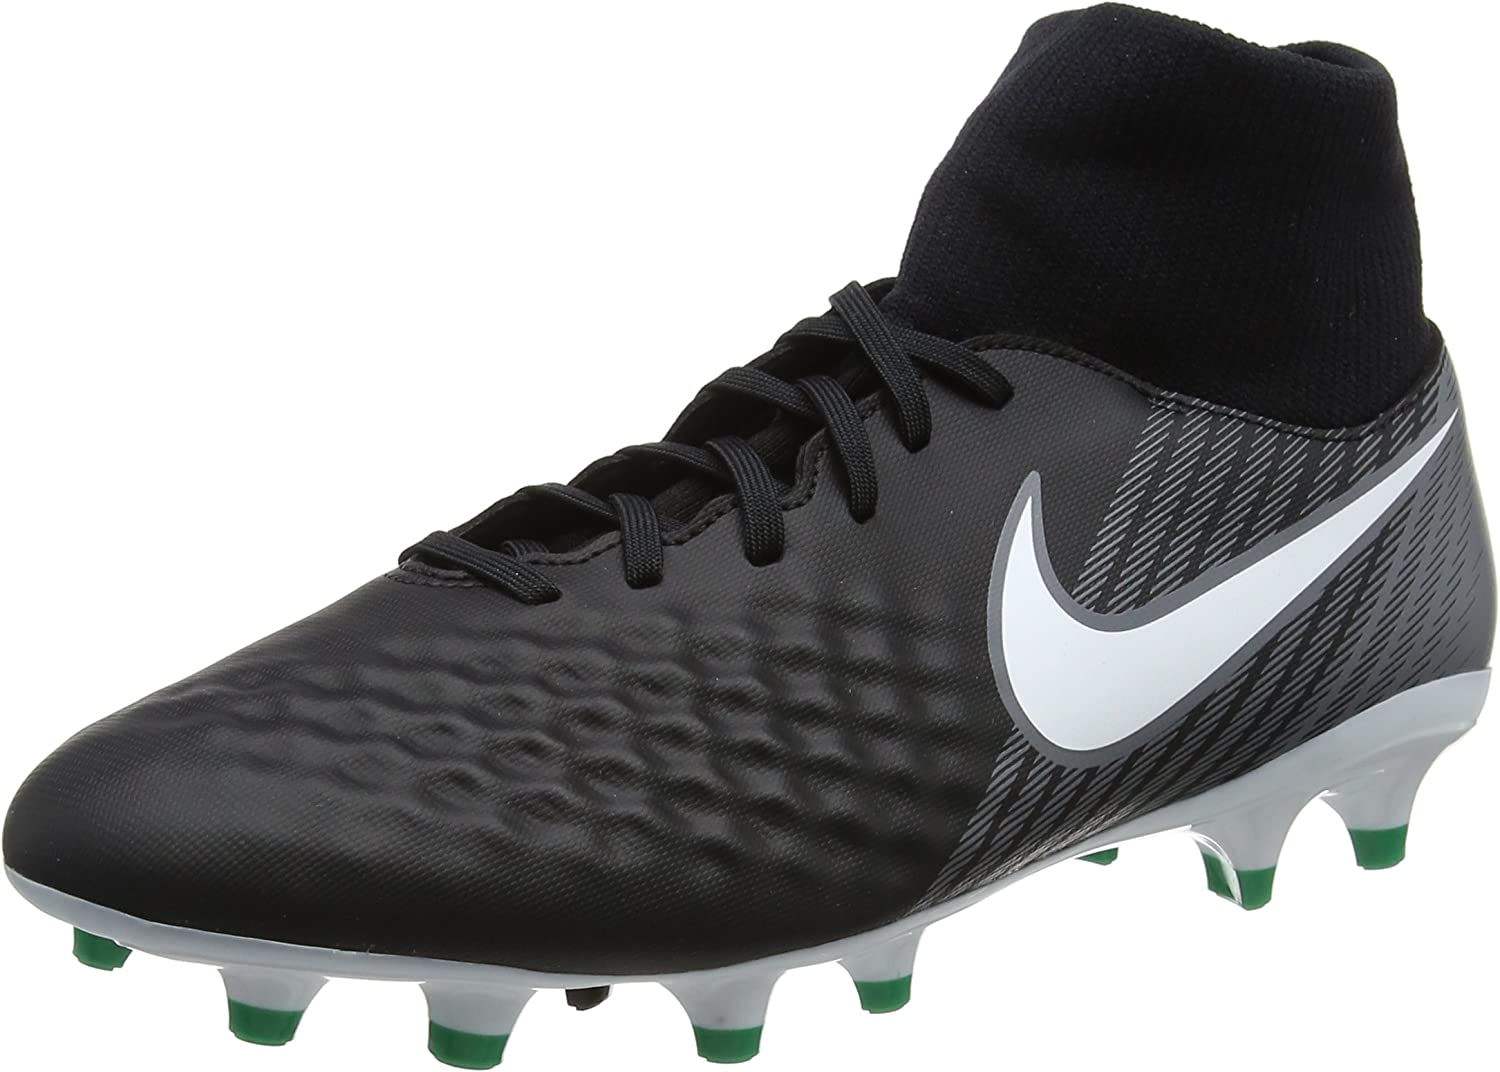 cruzar Hermano harto  Nike Men's Magista Onda Ii Dynamic Fit (Fg) Football Boots: Amazon.co.uk:  Shoes & Bags